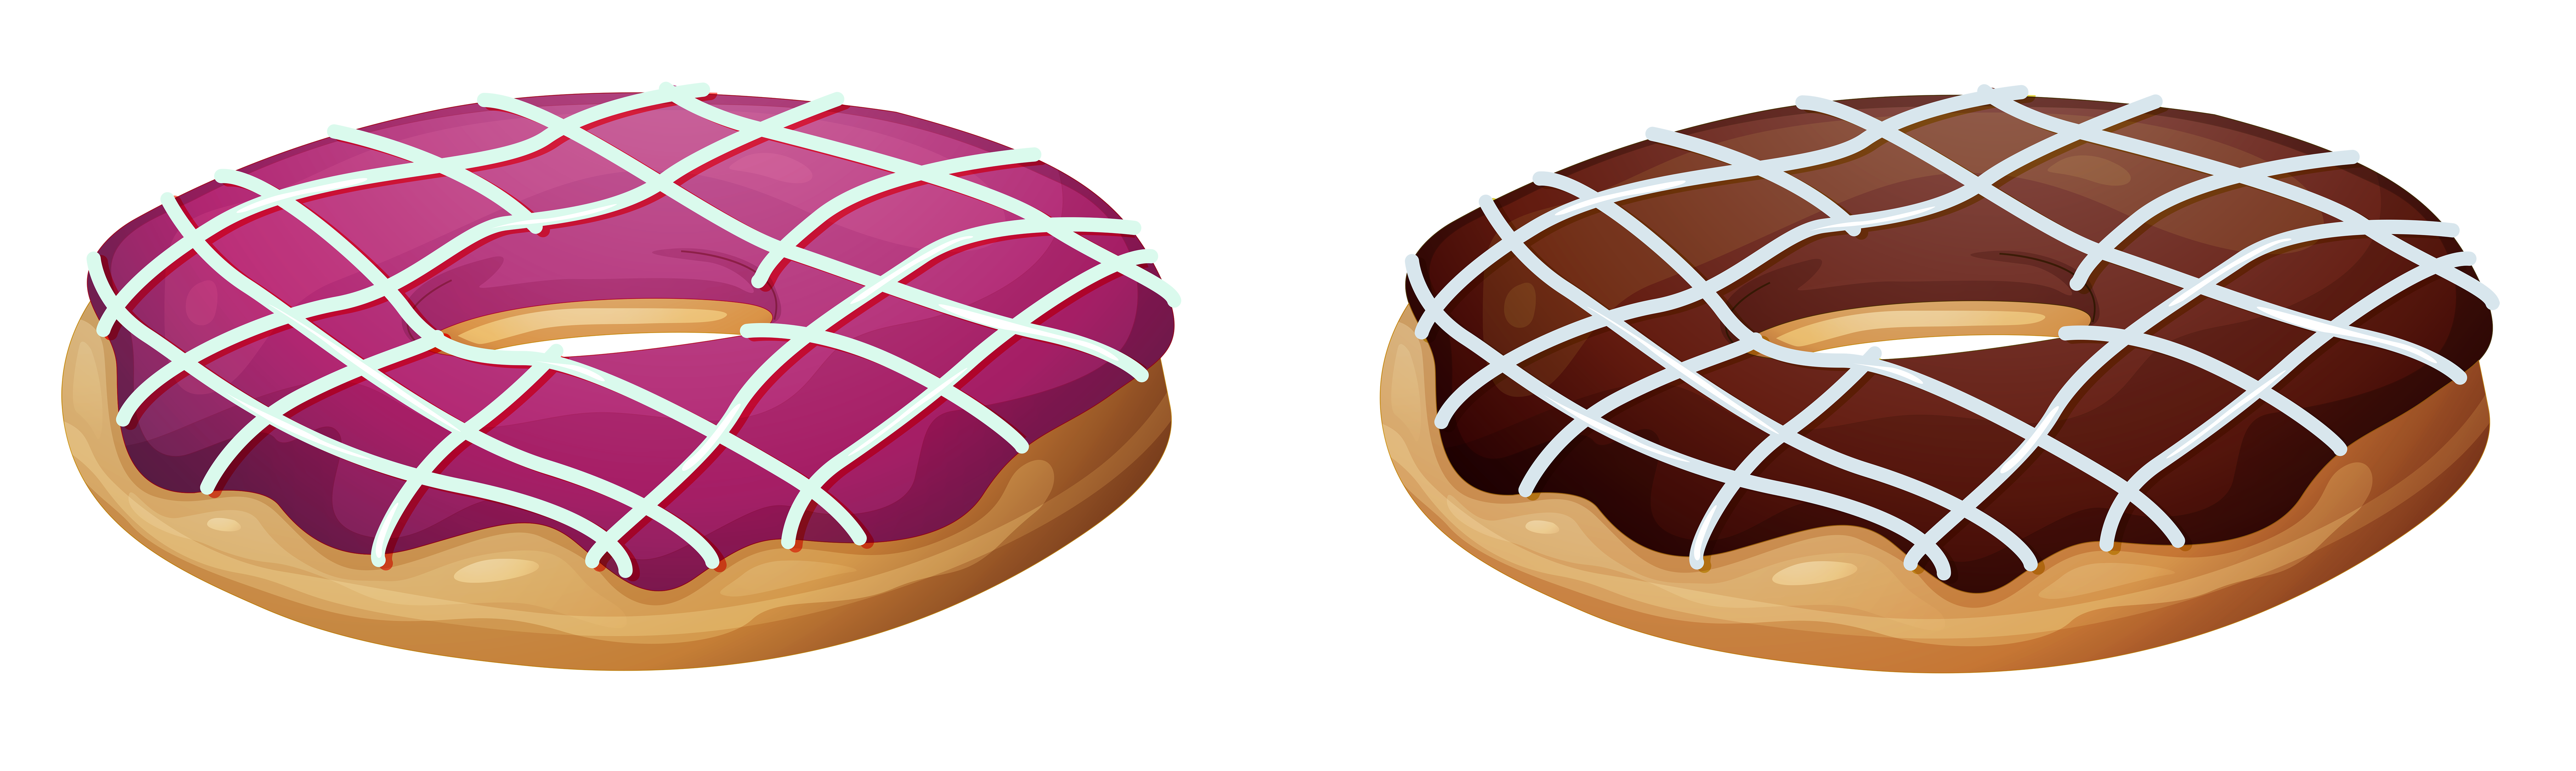 Clipart halloween donut. Donuts png picture gallery